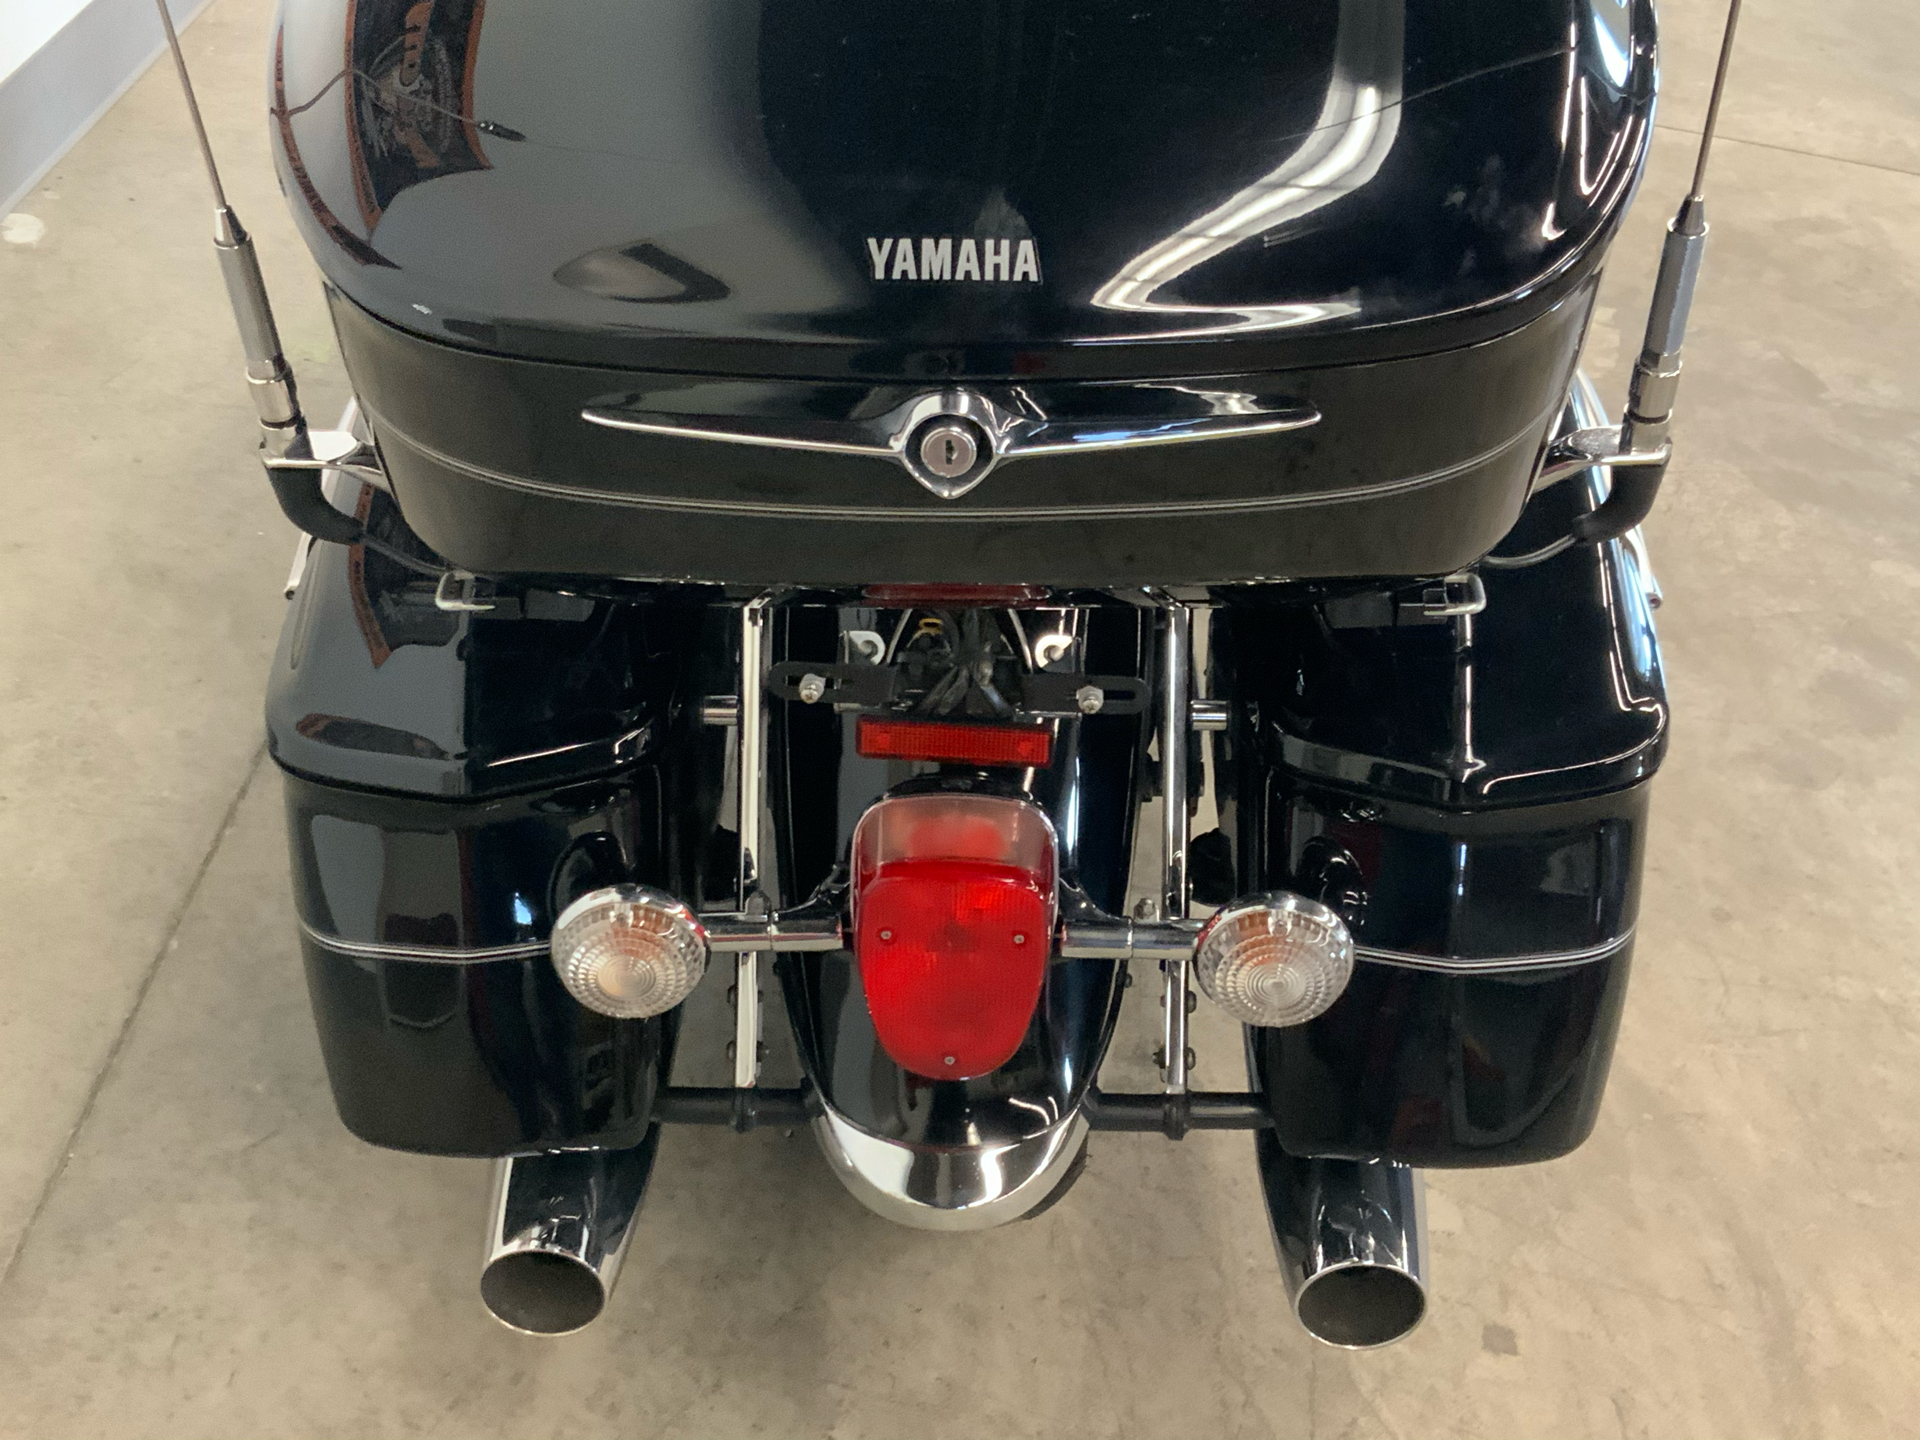 2012 Yamaha Royal Star Venture S in Flint, Michigan - Photo 13